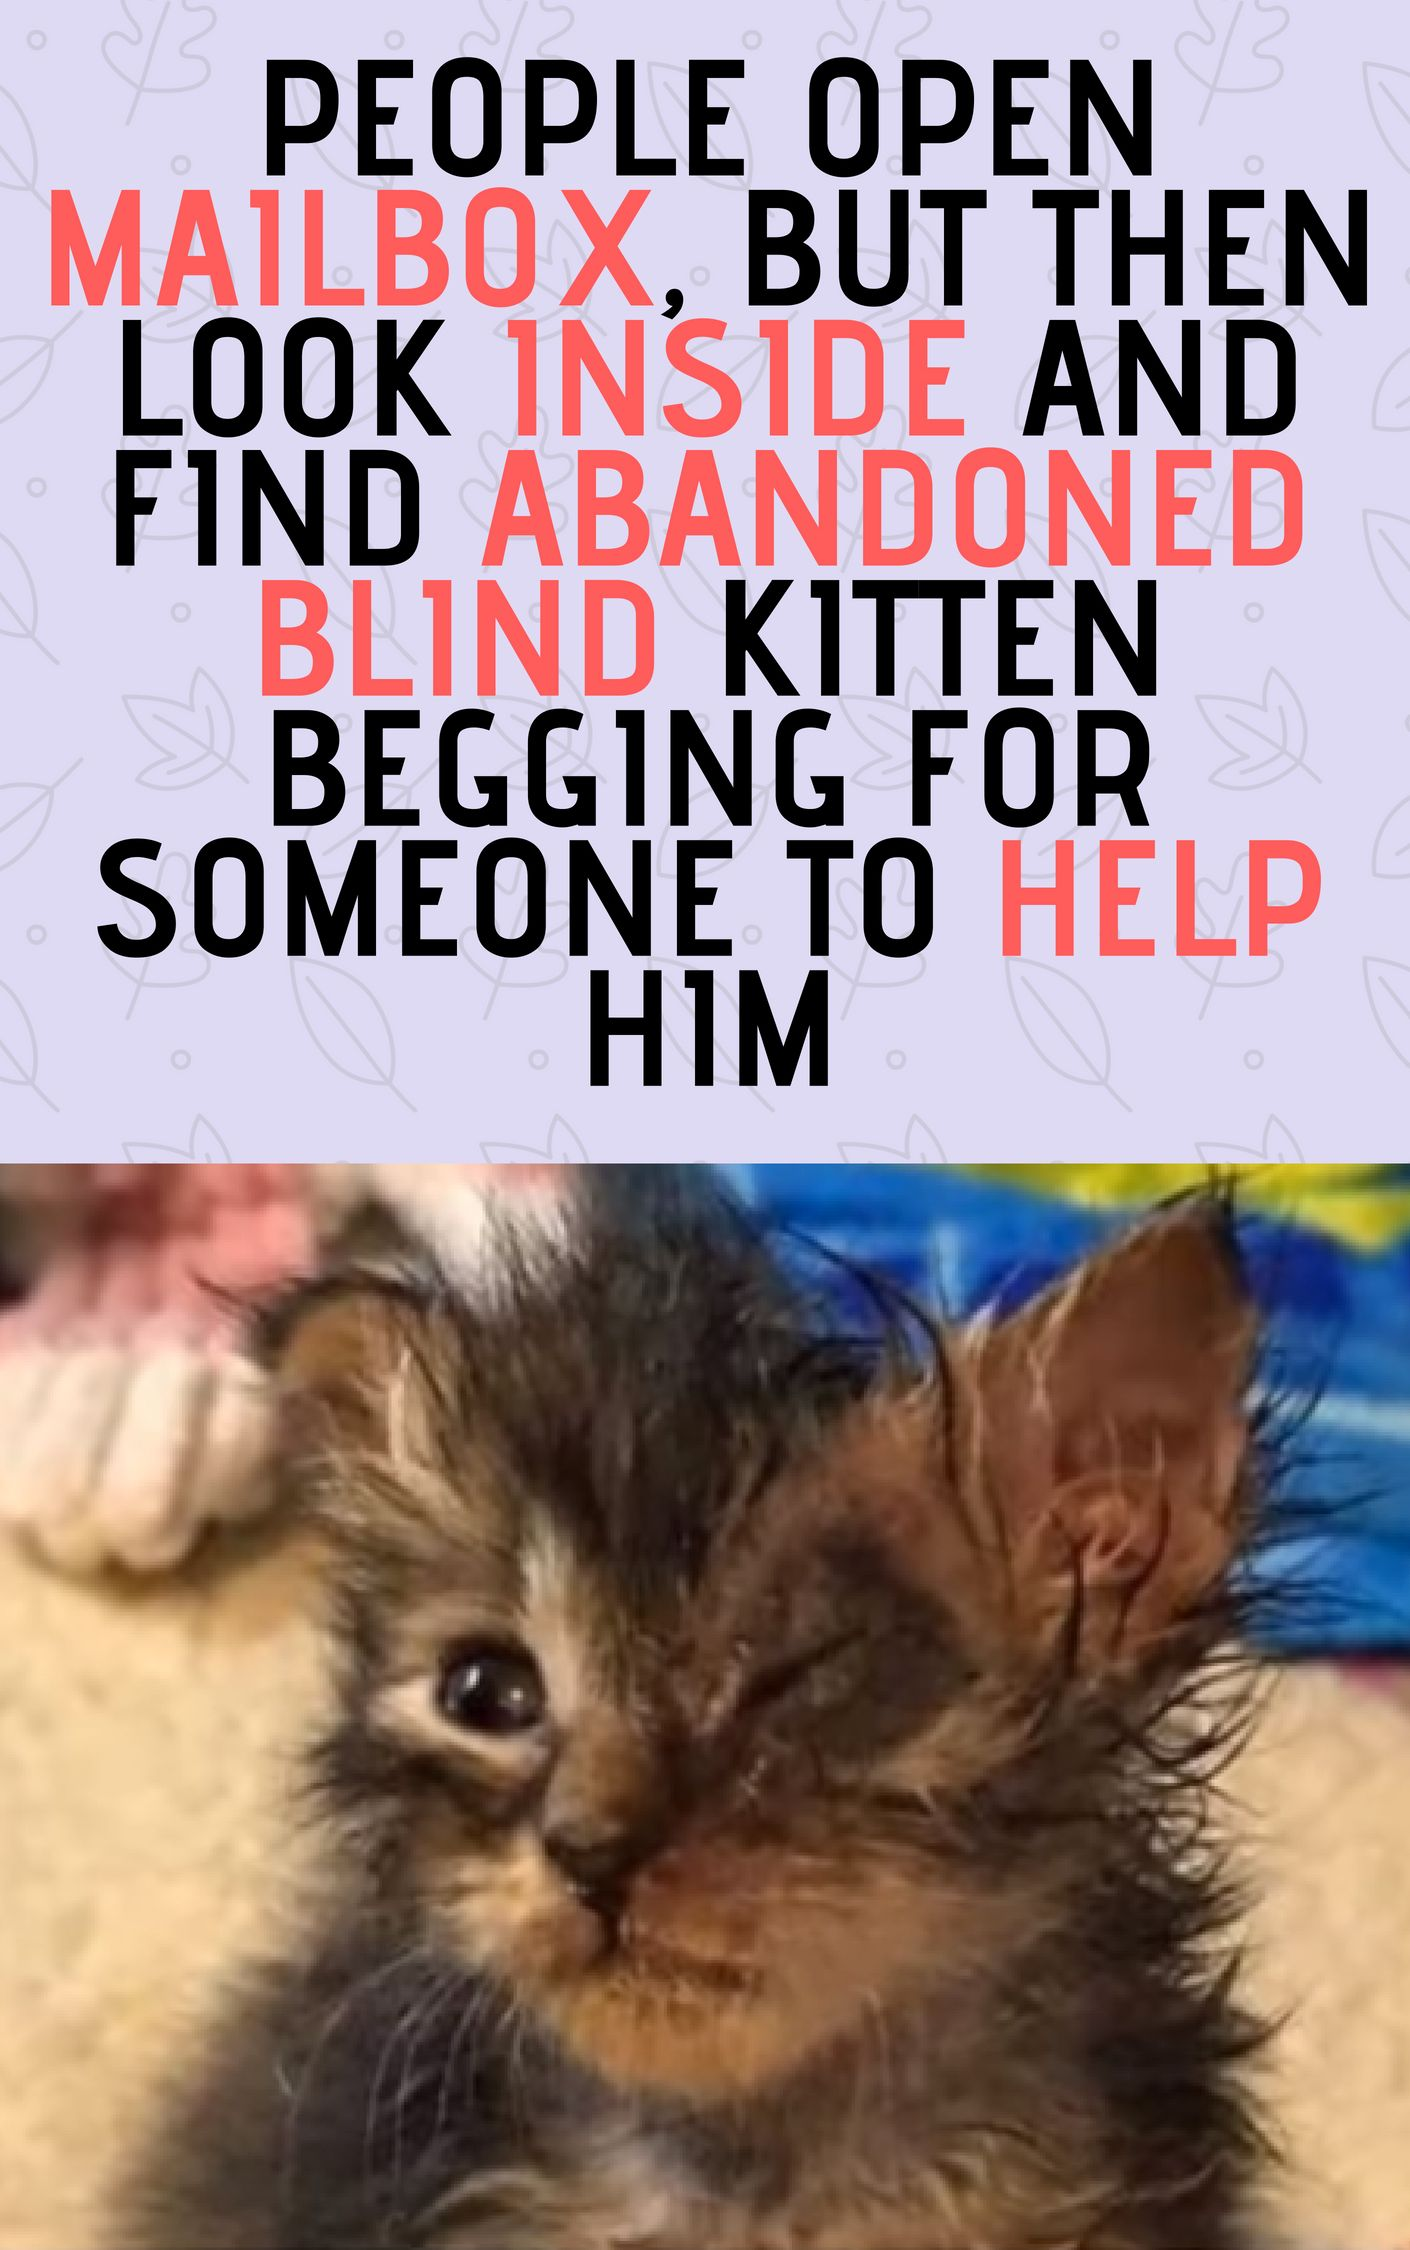 People Open Mailbox But Then Look Inside And Find Abandoned Blind Kitten Begging For Someone To Help Him Cats And Kittens Stories Why Do Cats Purr Cat Rescue Stories Kitten